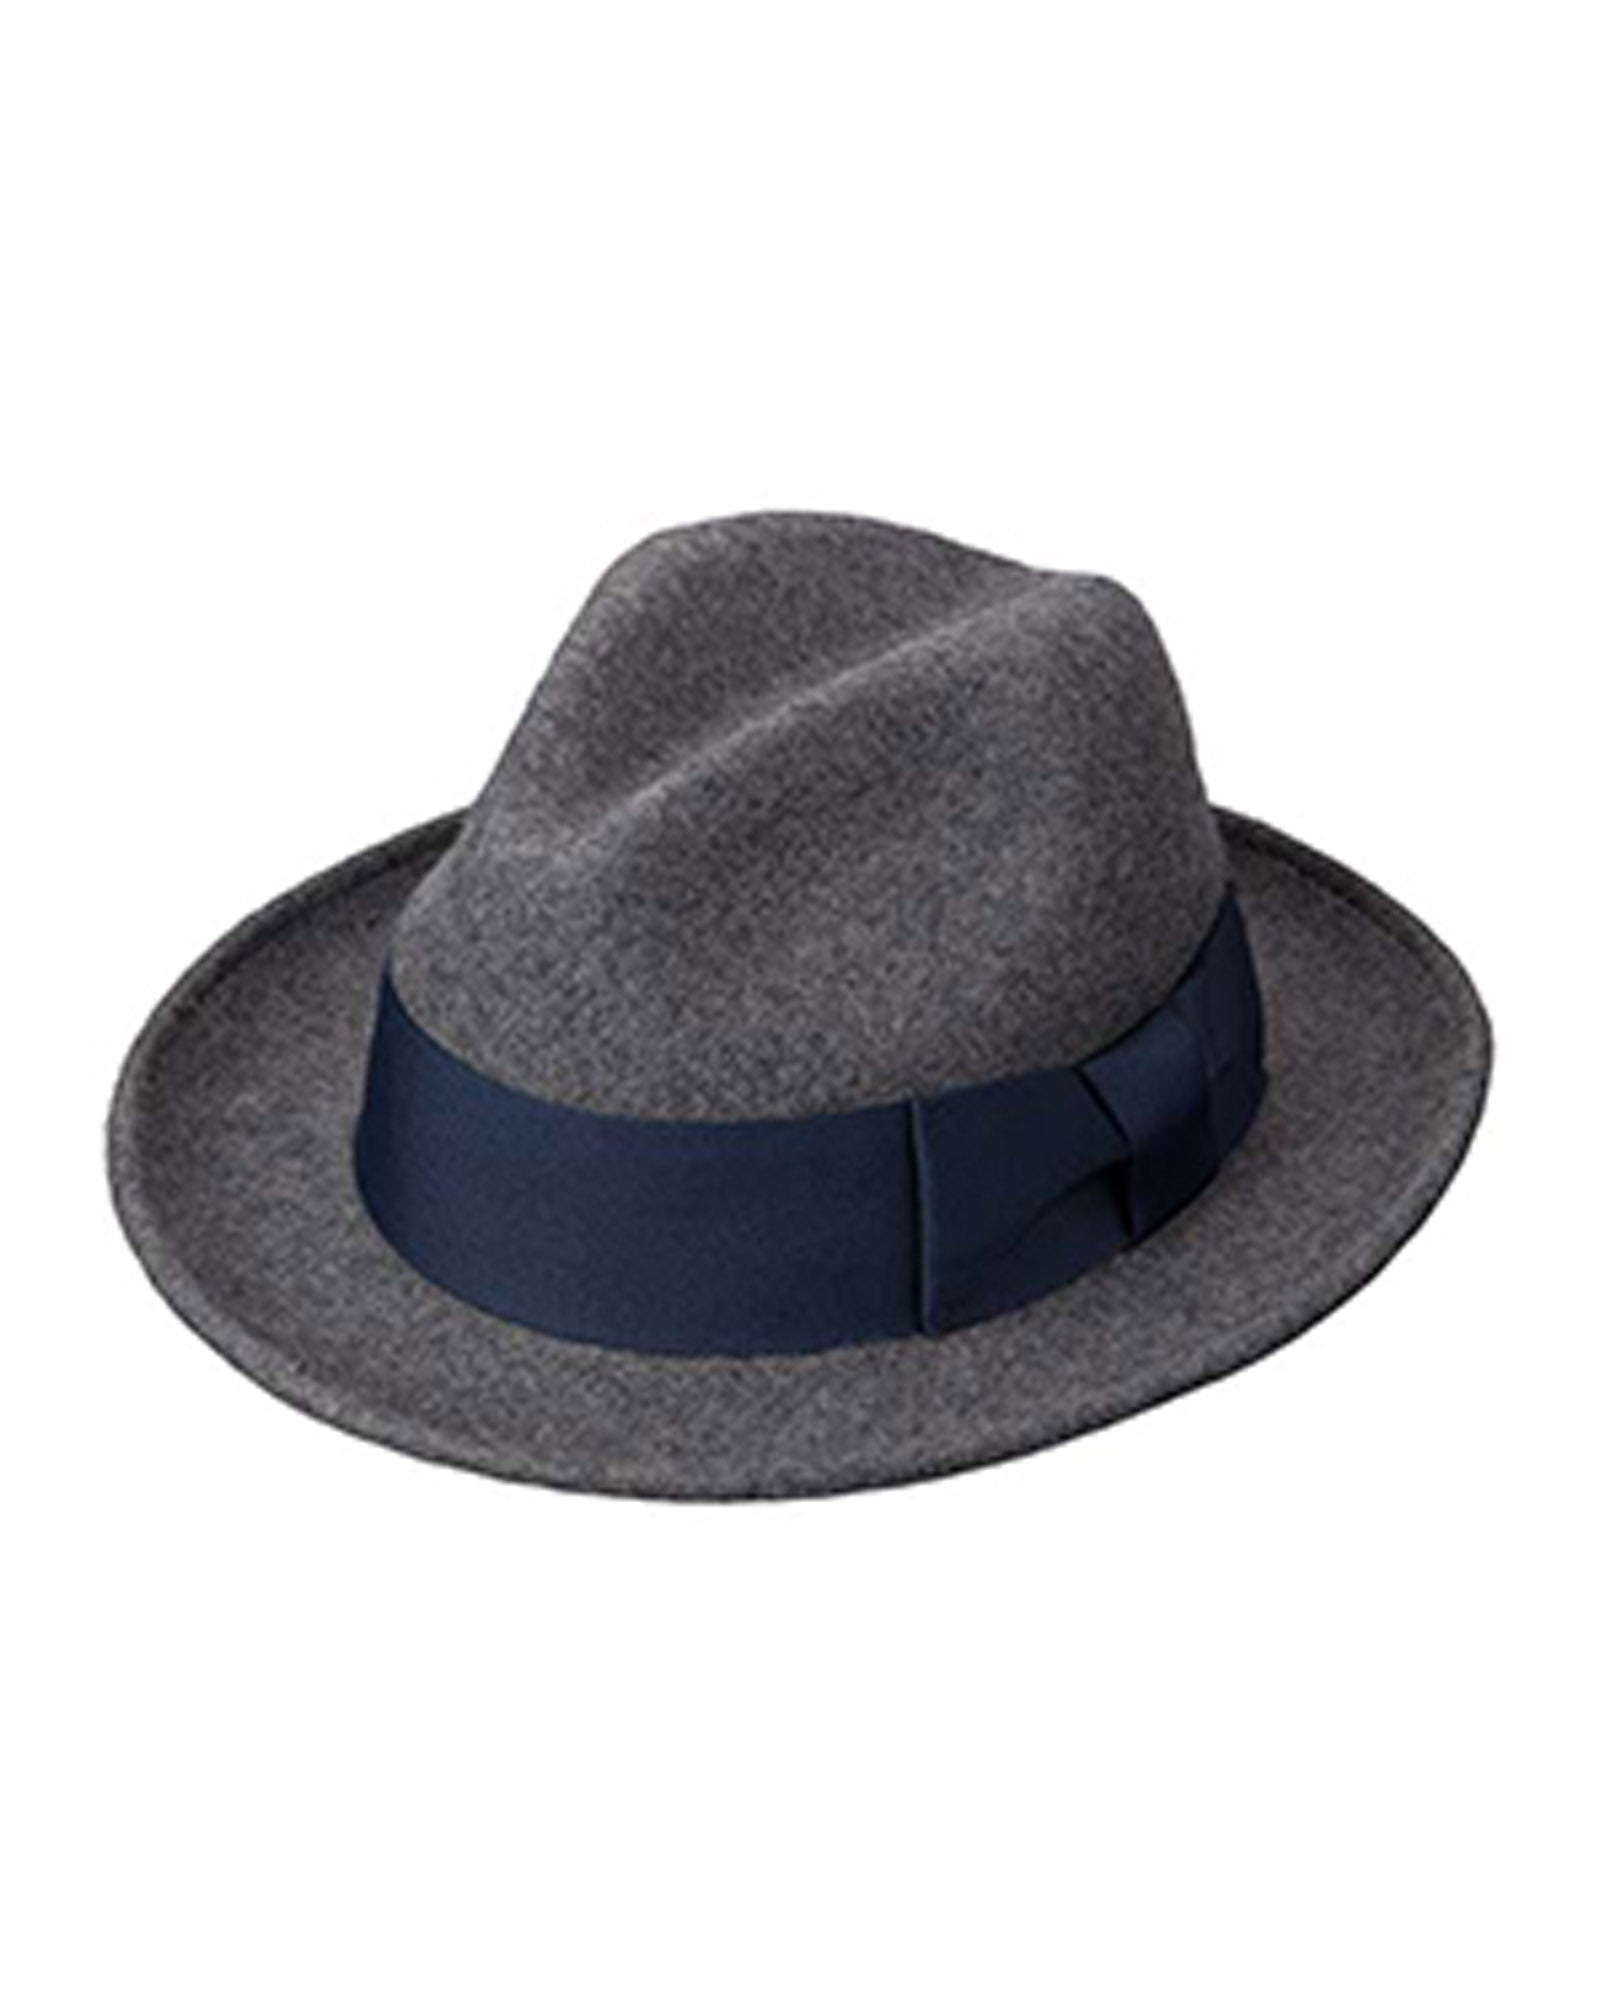 Broner Jimmie Grey Heather Wool Felt Fedora with 2.75 inch Brim - Rainwater's